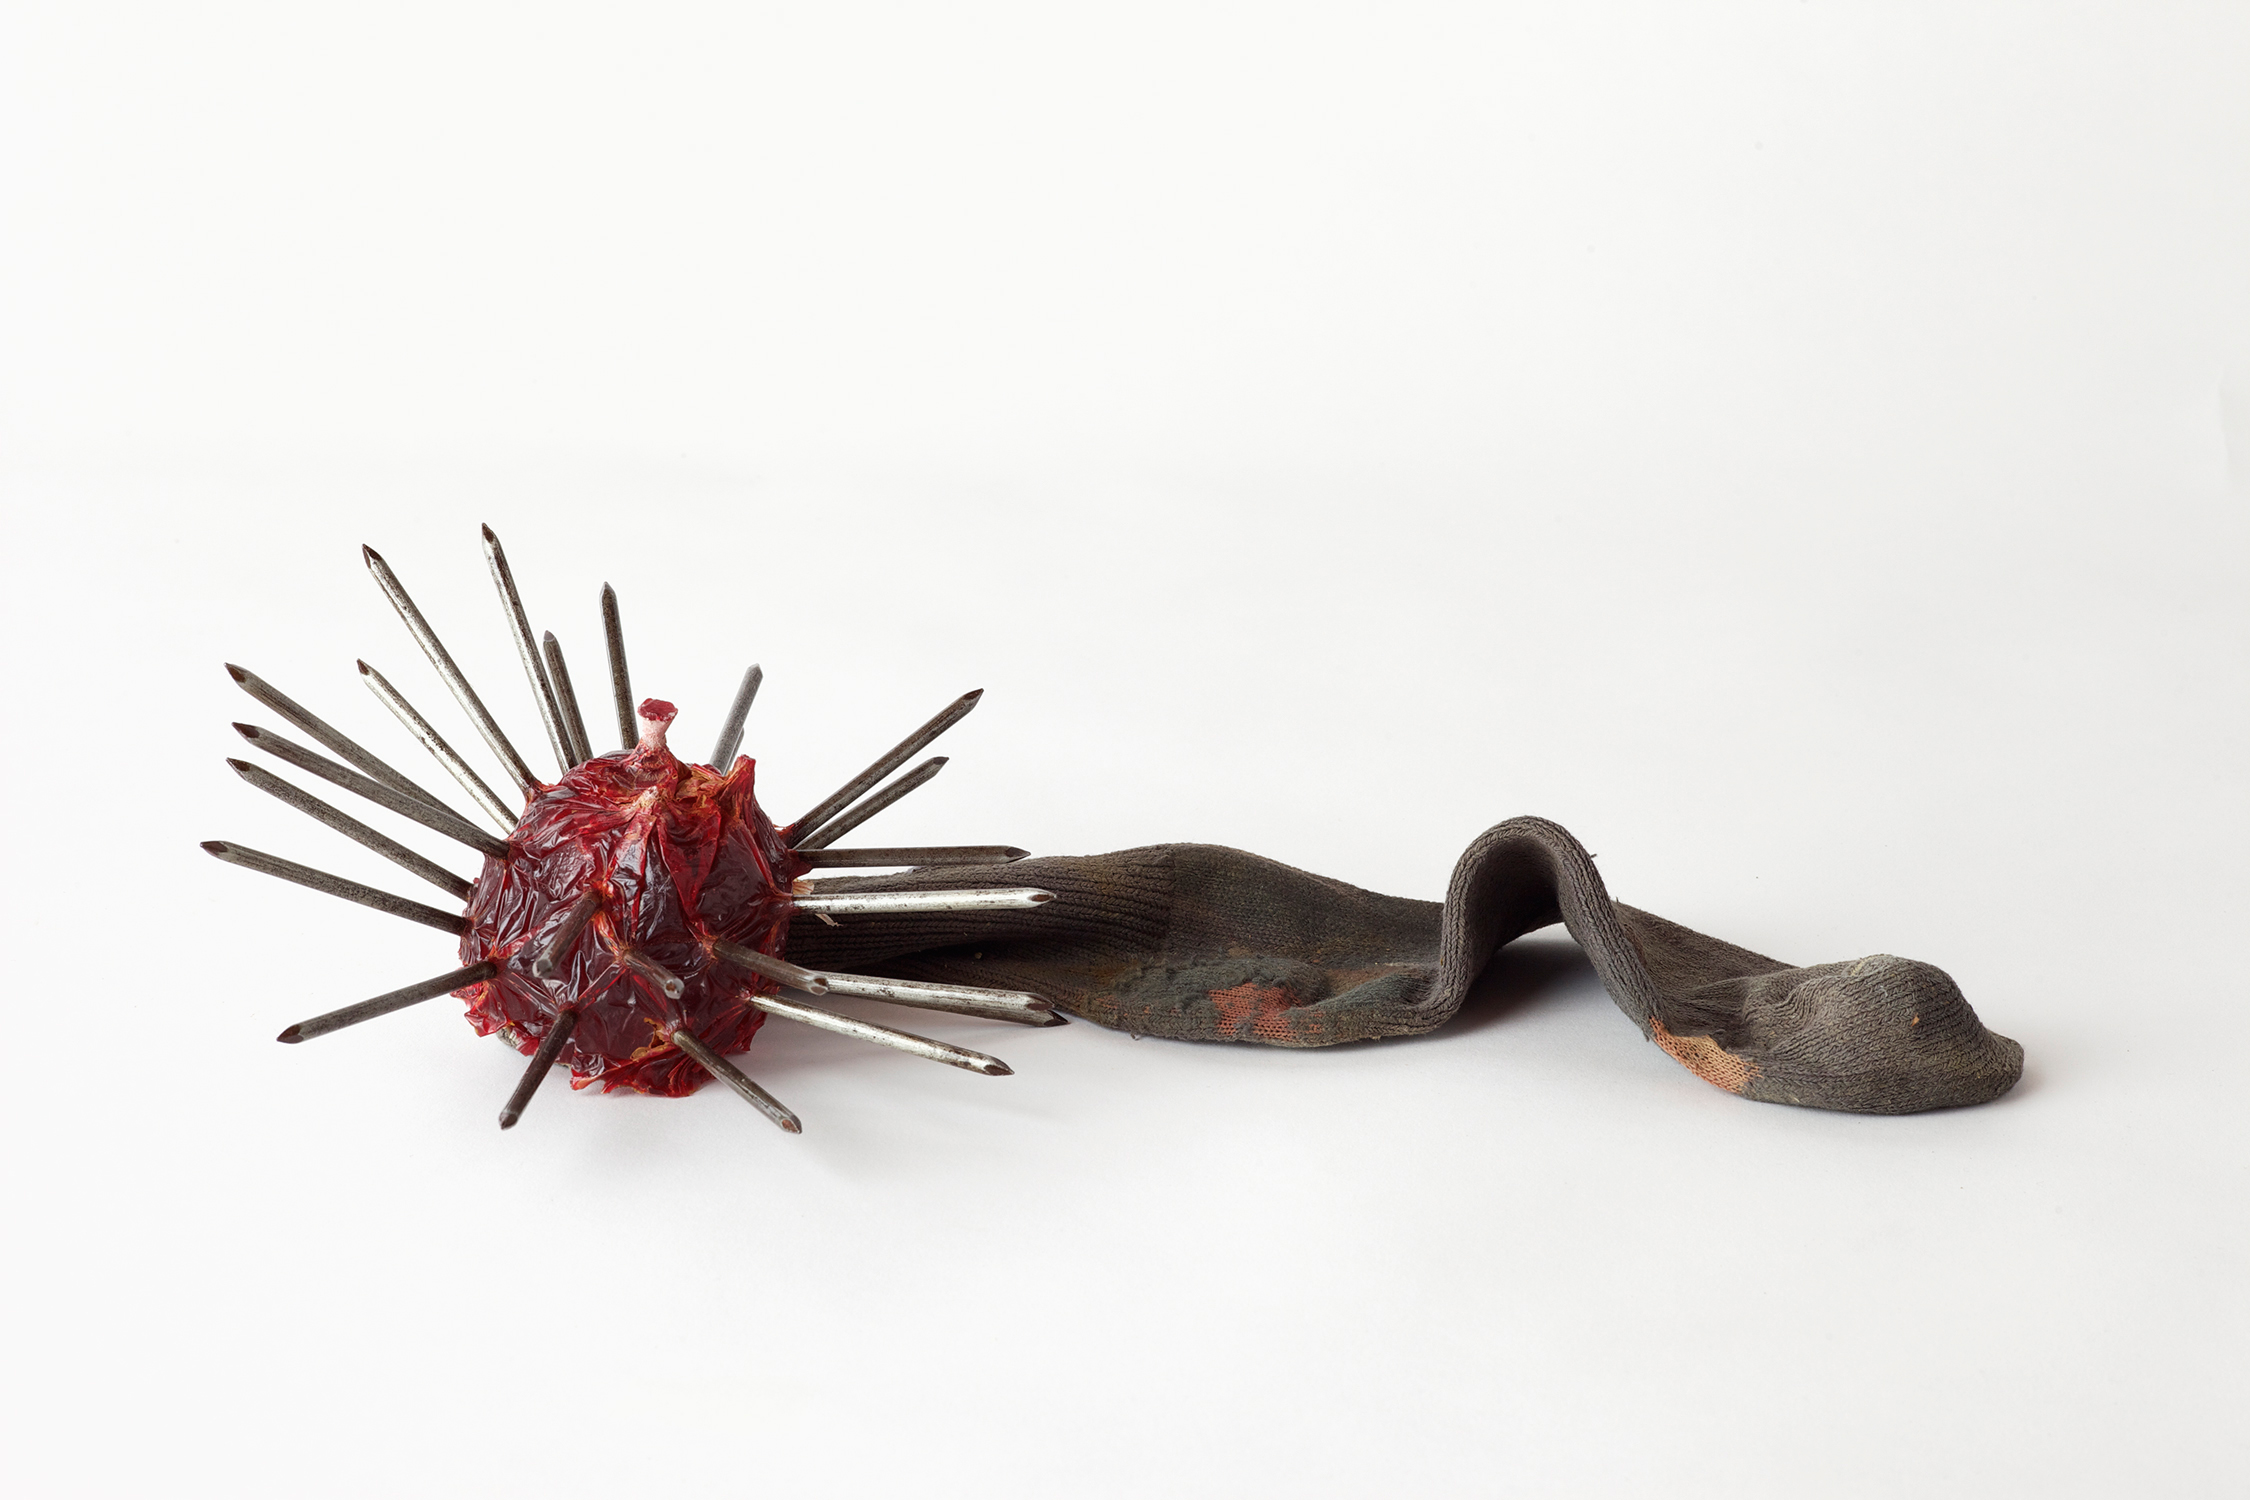 Emergency-Weapon-#21-(red-with-brown-sock)_2002_7'W-x-12'L-x-6'H_sock,-dirt,-urethane-resin,-nails